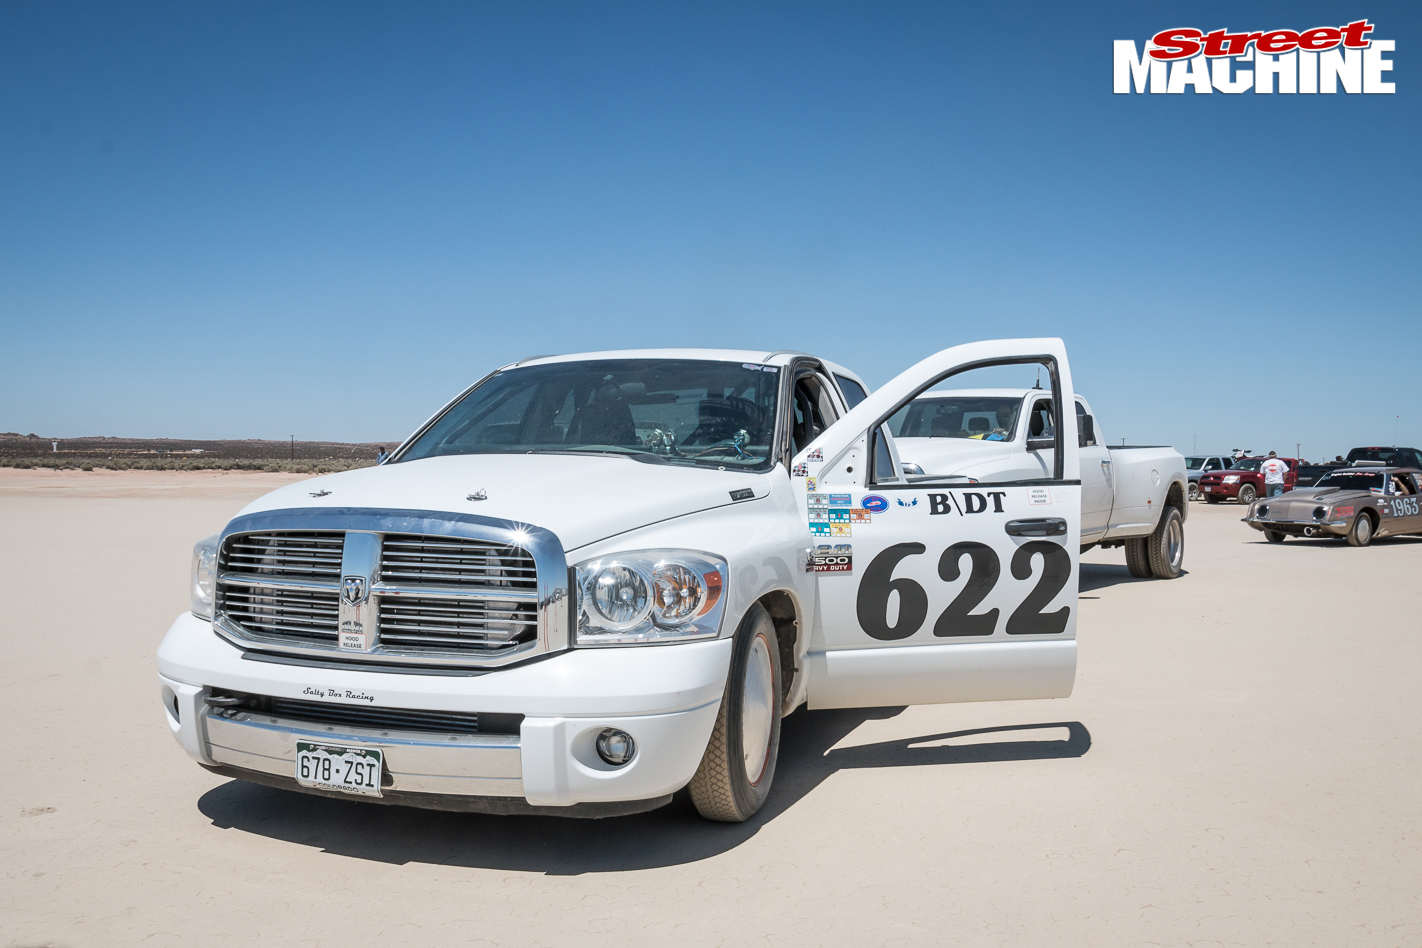 1115HP DODGE RAM PICK-UP SETS CL LAND SPEED RECORD AT EL MIRAGE